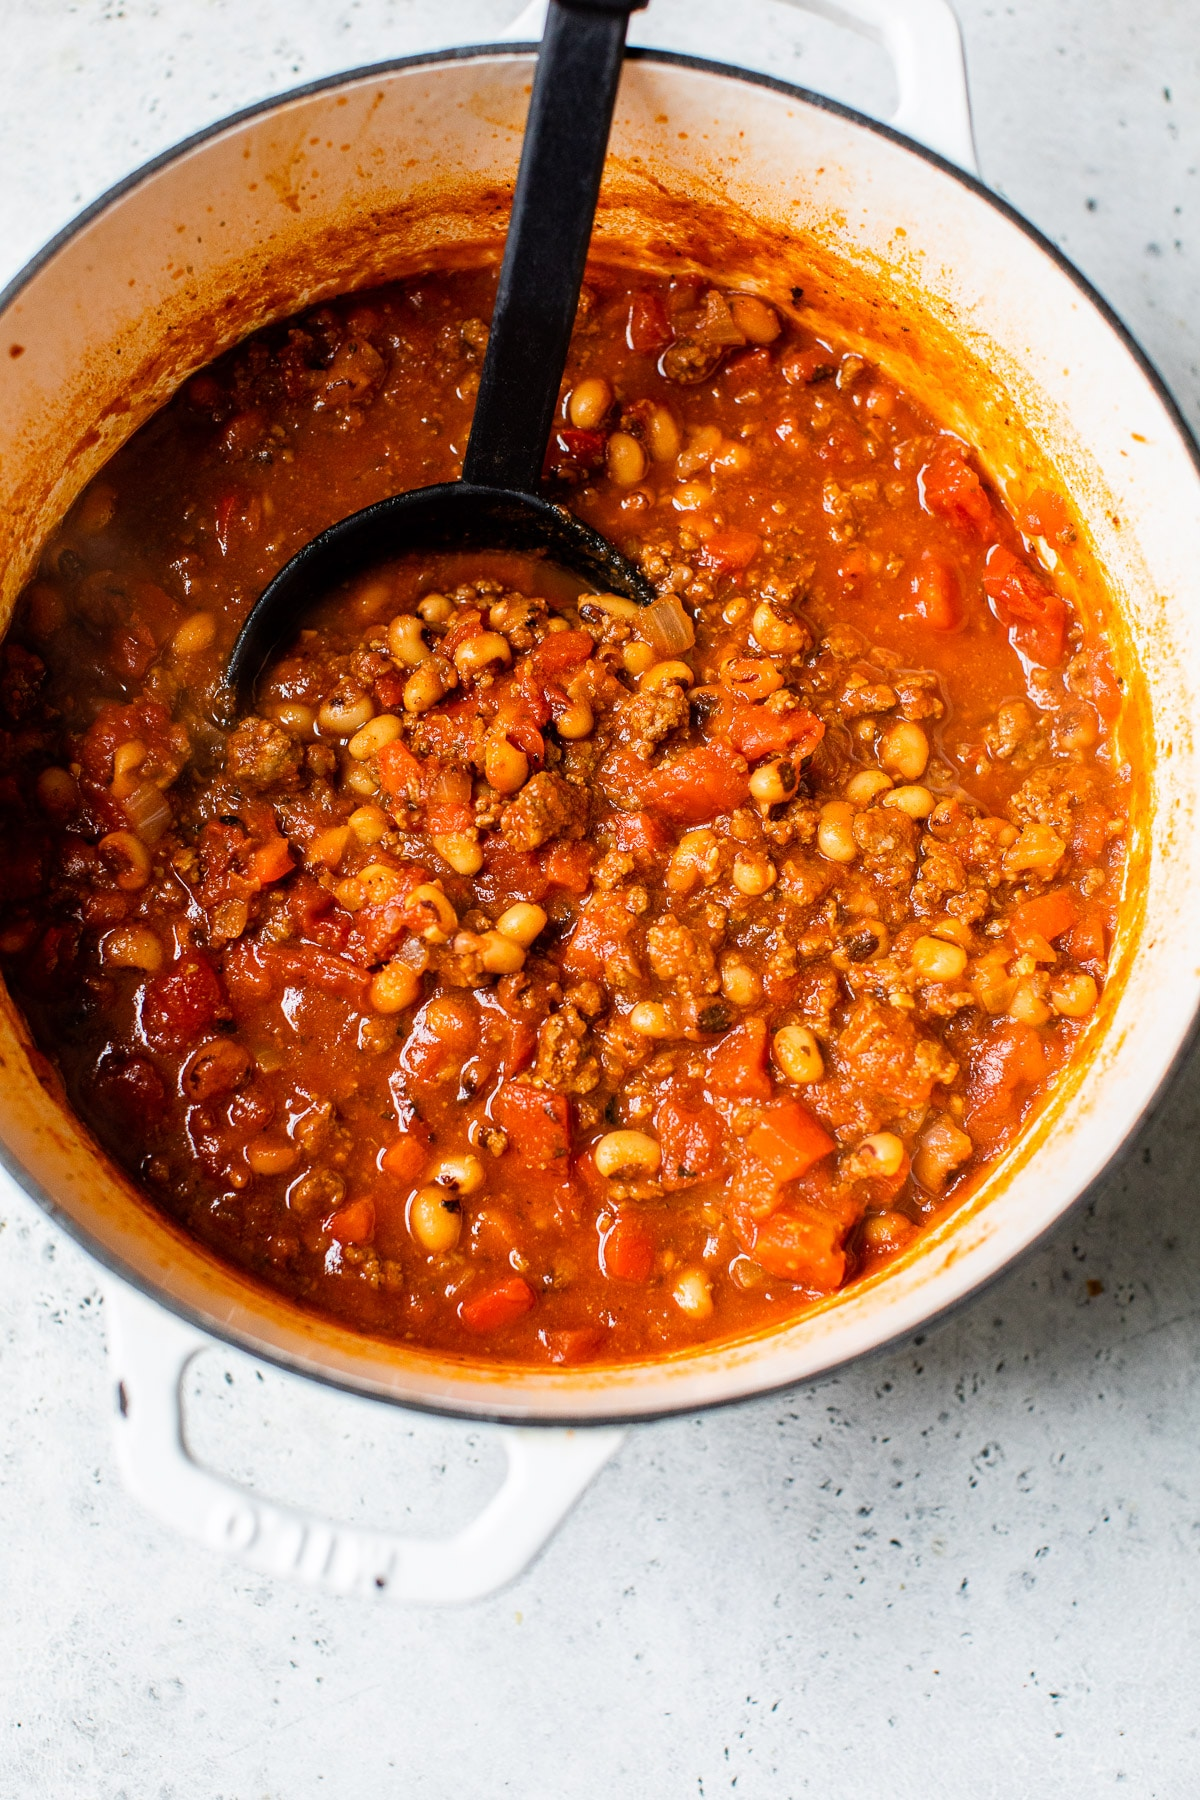 cooked chili in a large dutch oven